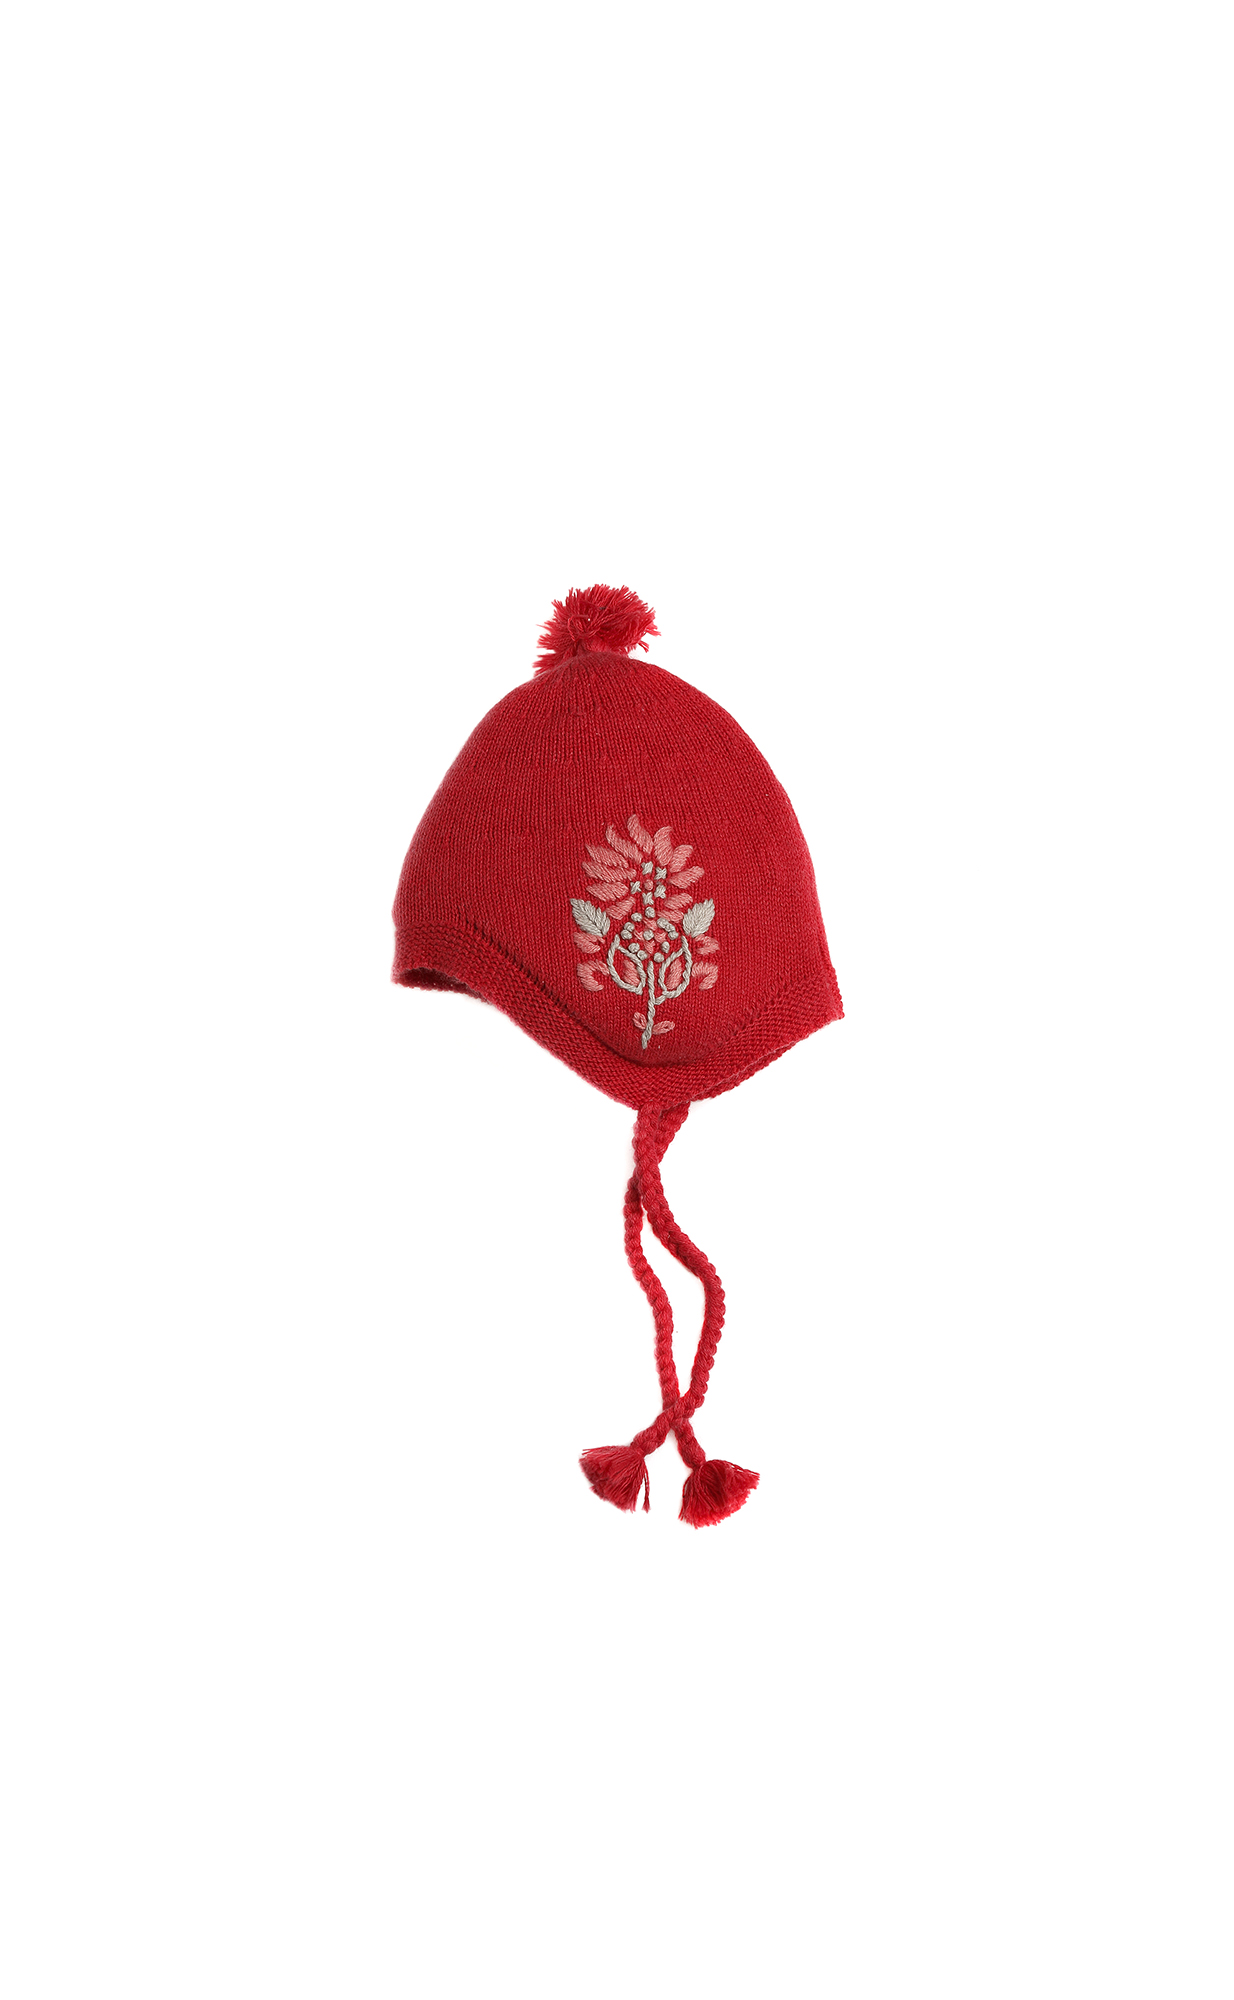 Purebaby Lotus Embroided Beanie - Elderberry Melange